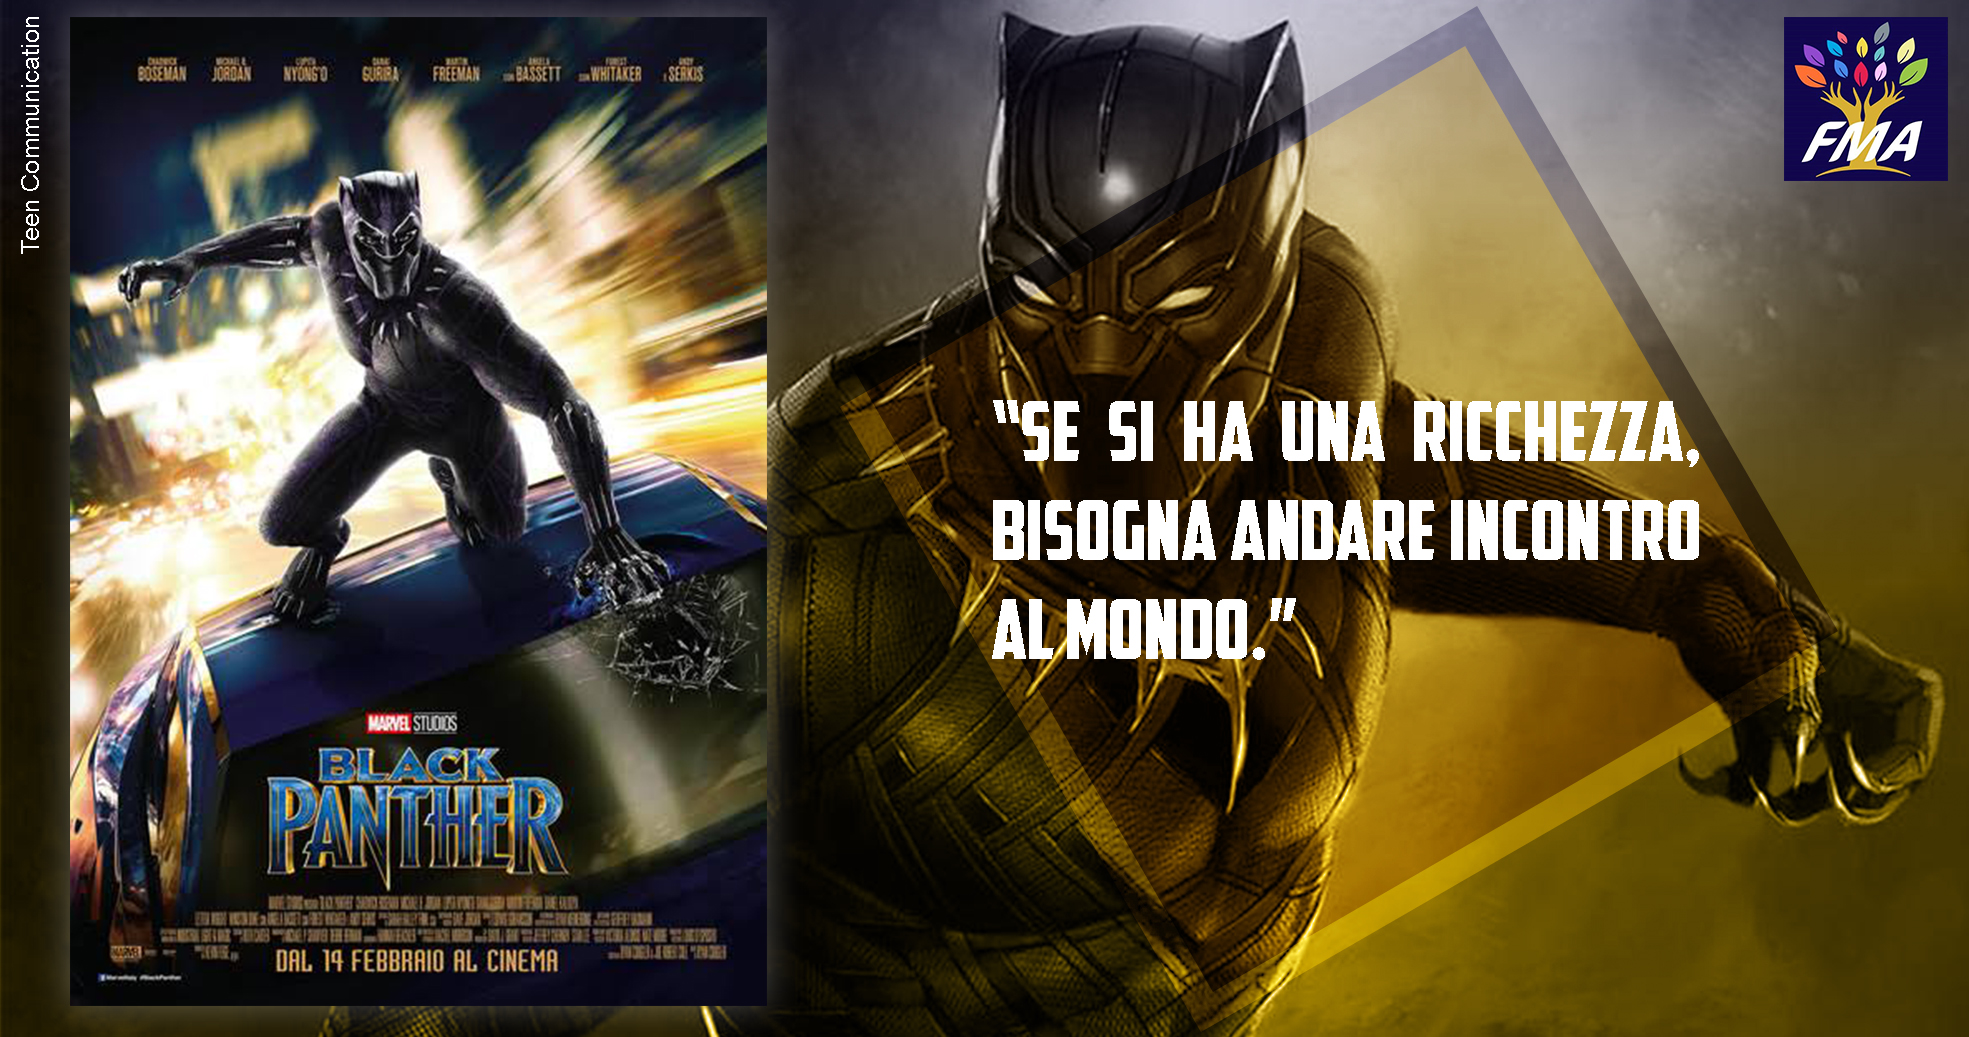 Black Panther Fma Lombardia